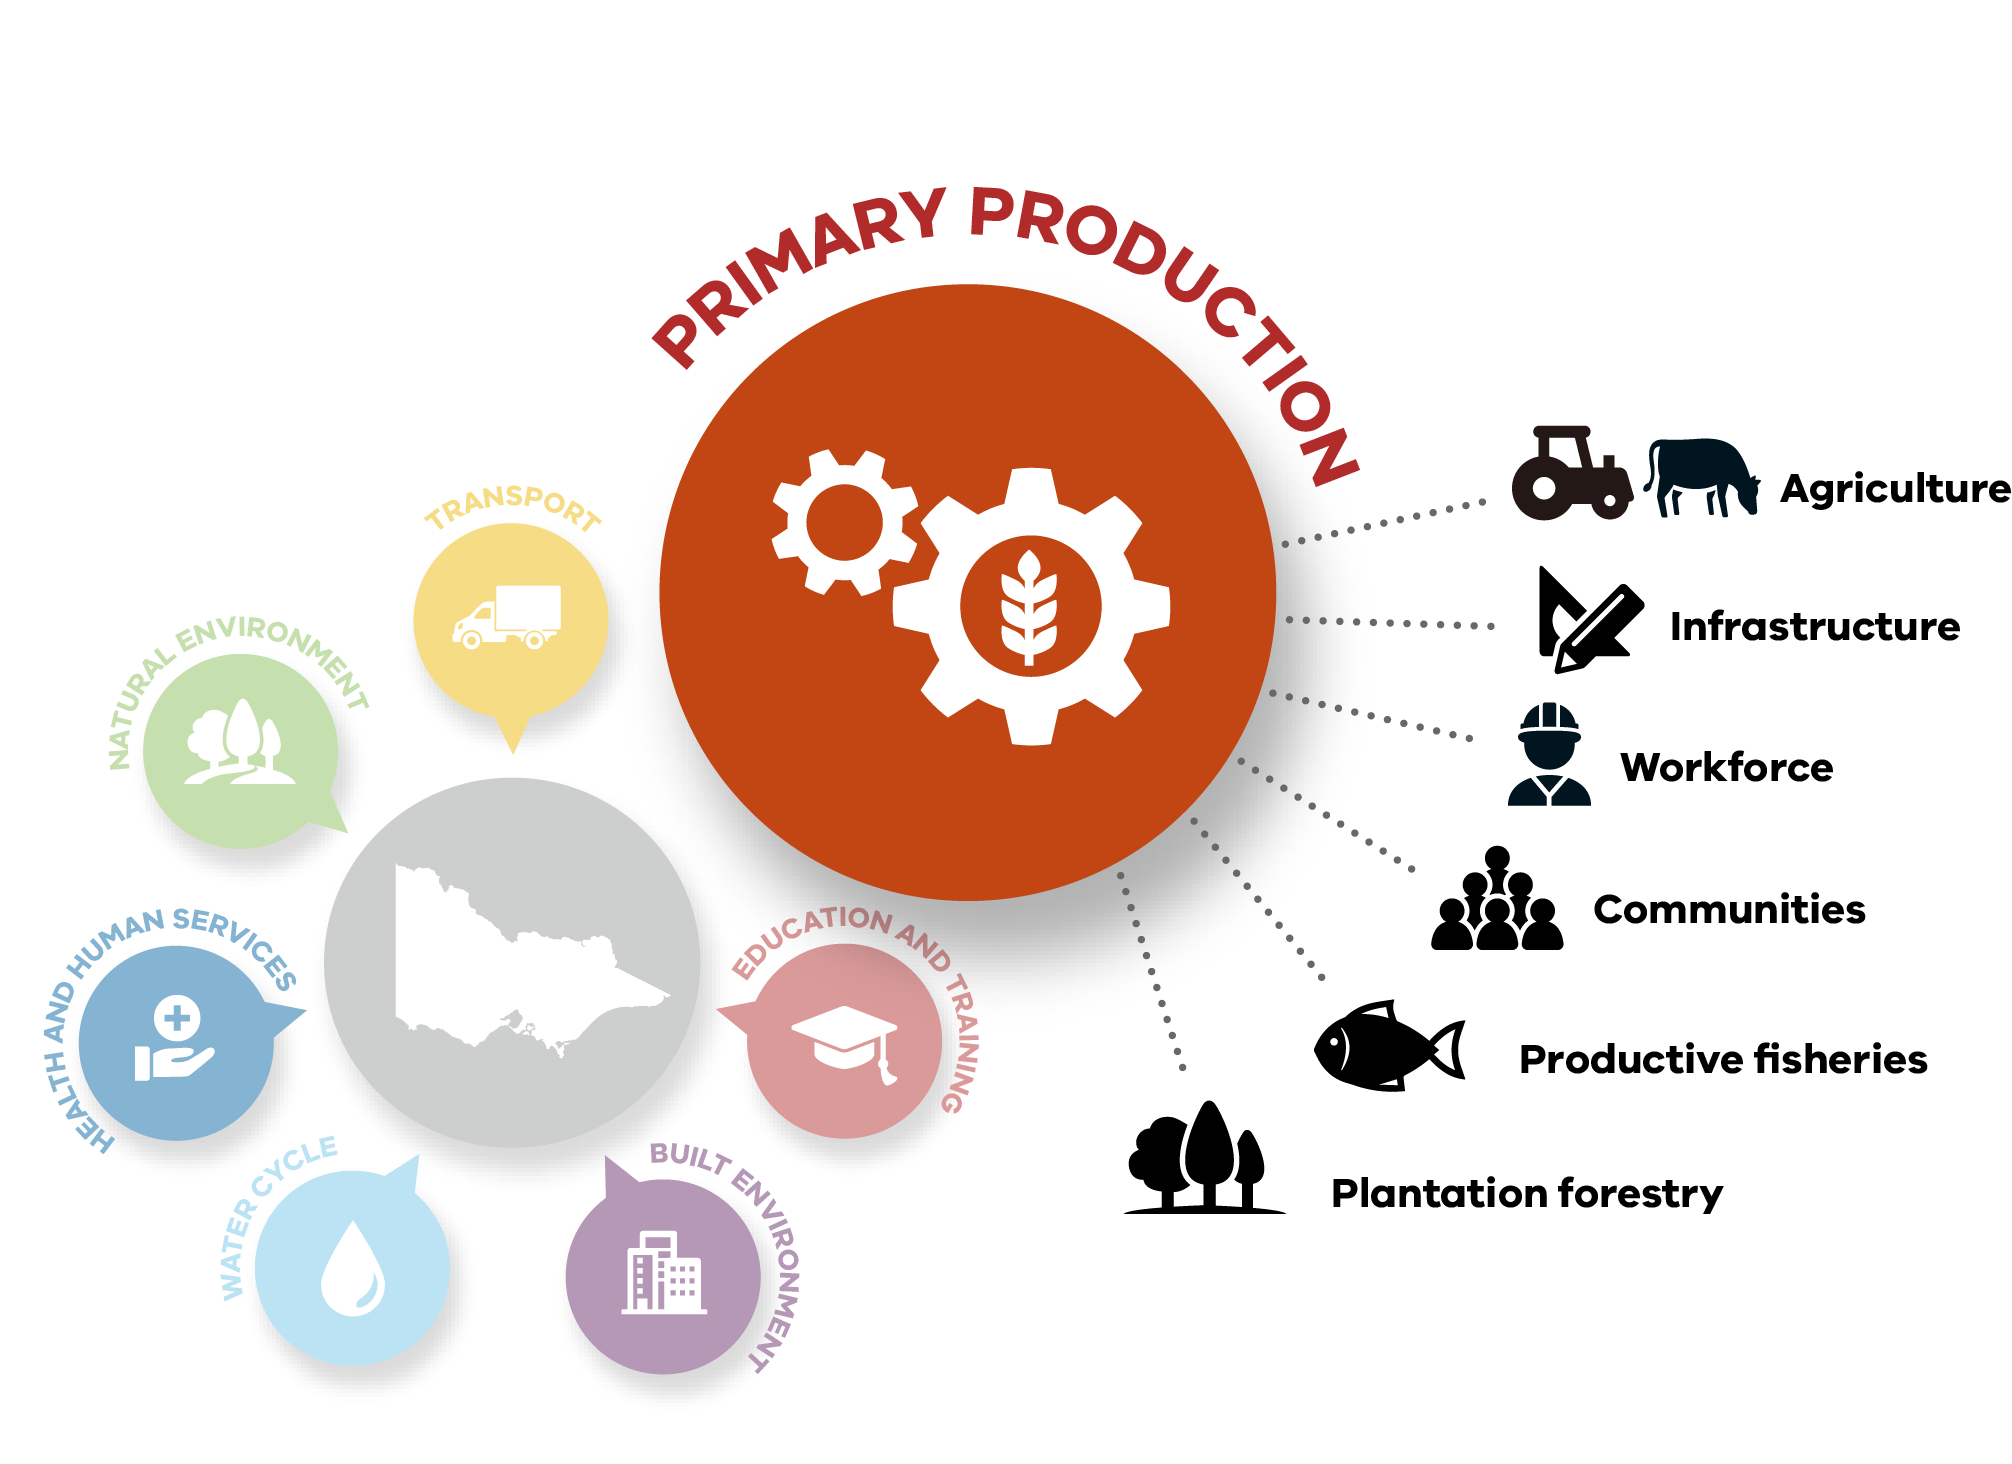 The primary production system includes agriculture, plantation forestry, productive fisheries and the infrastructure, workplace and communities supporting these industries